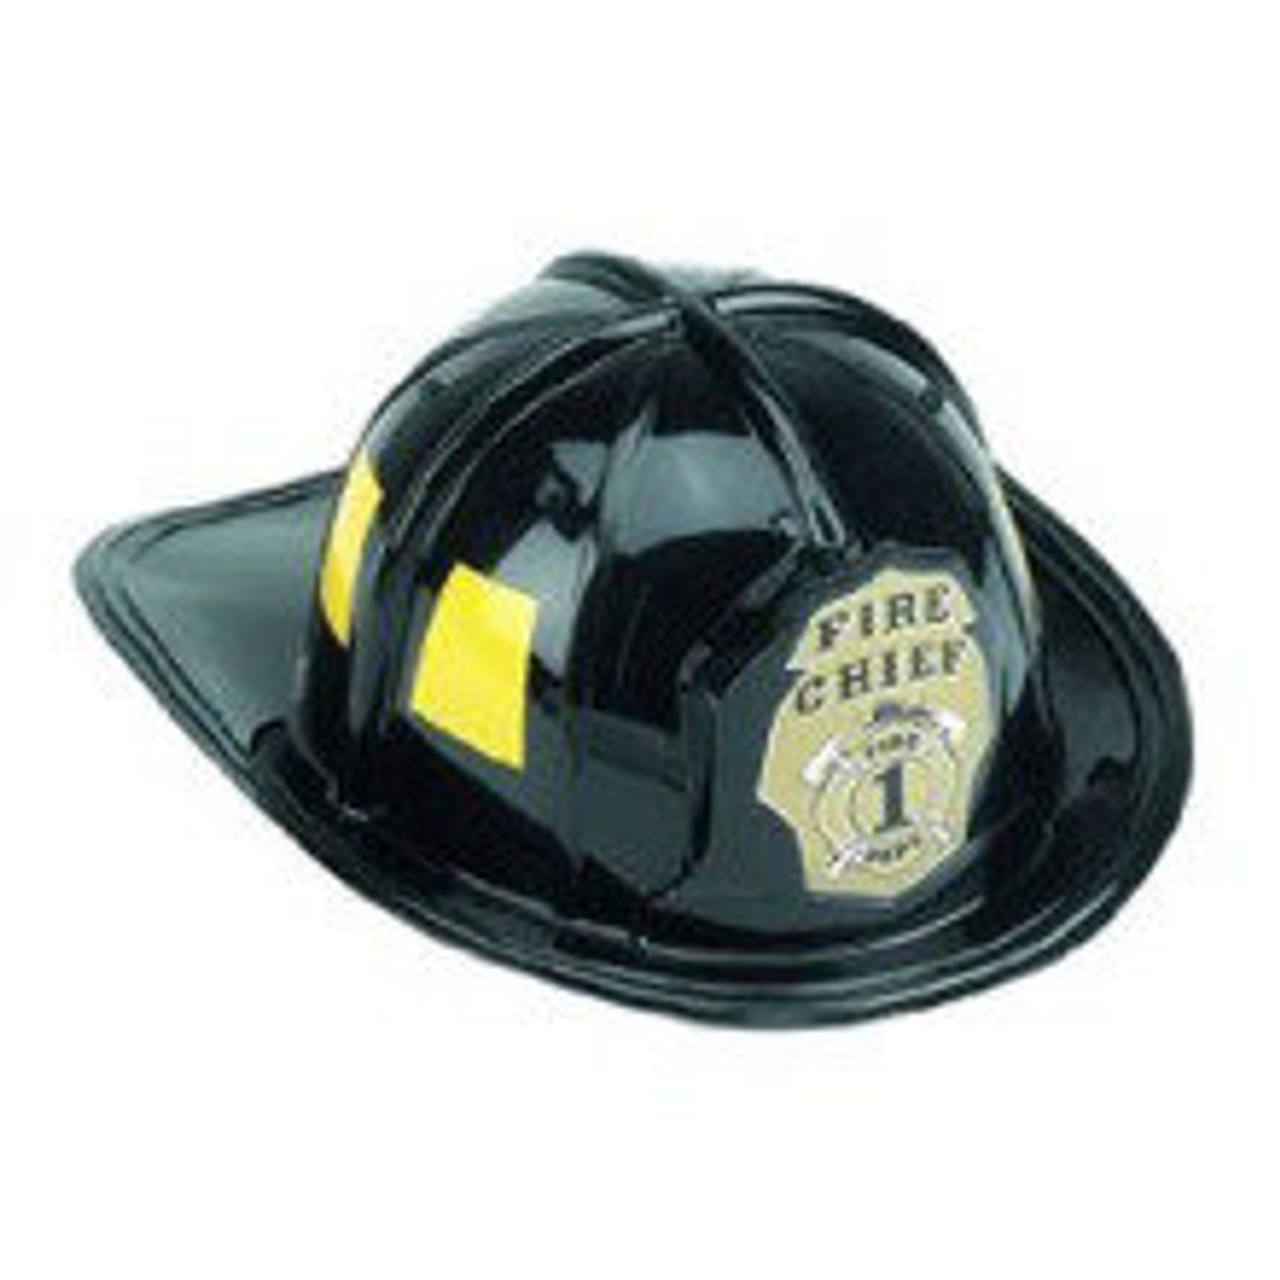 JR. Firefighter Kids Helmet